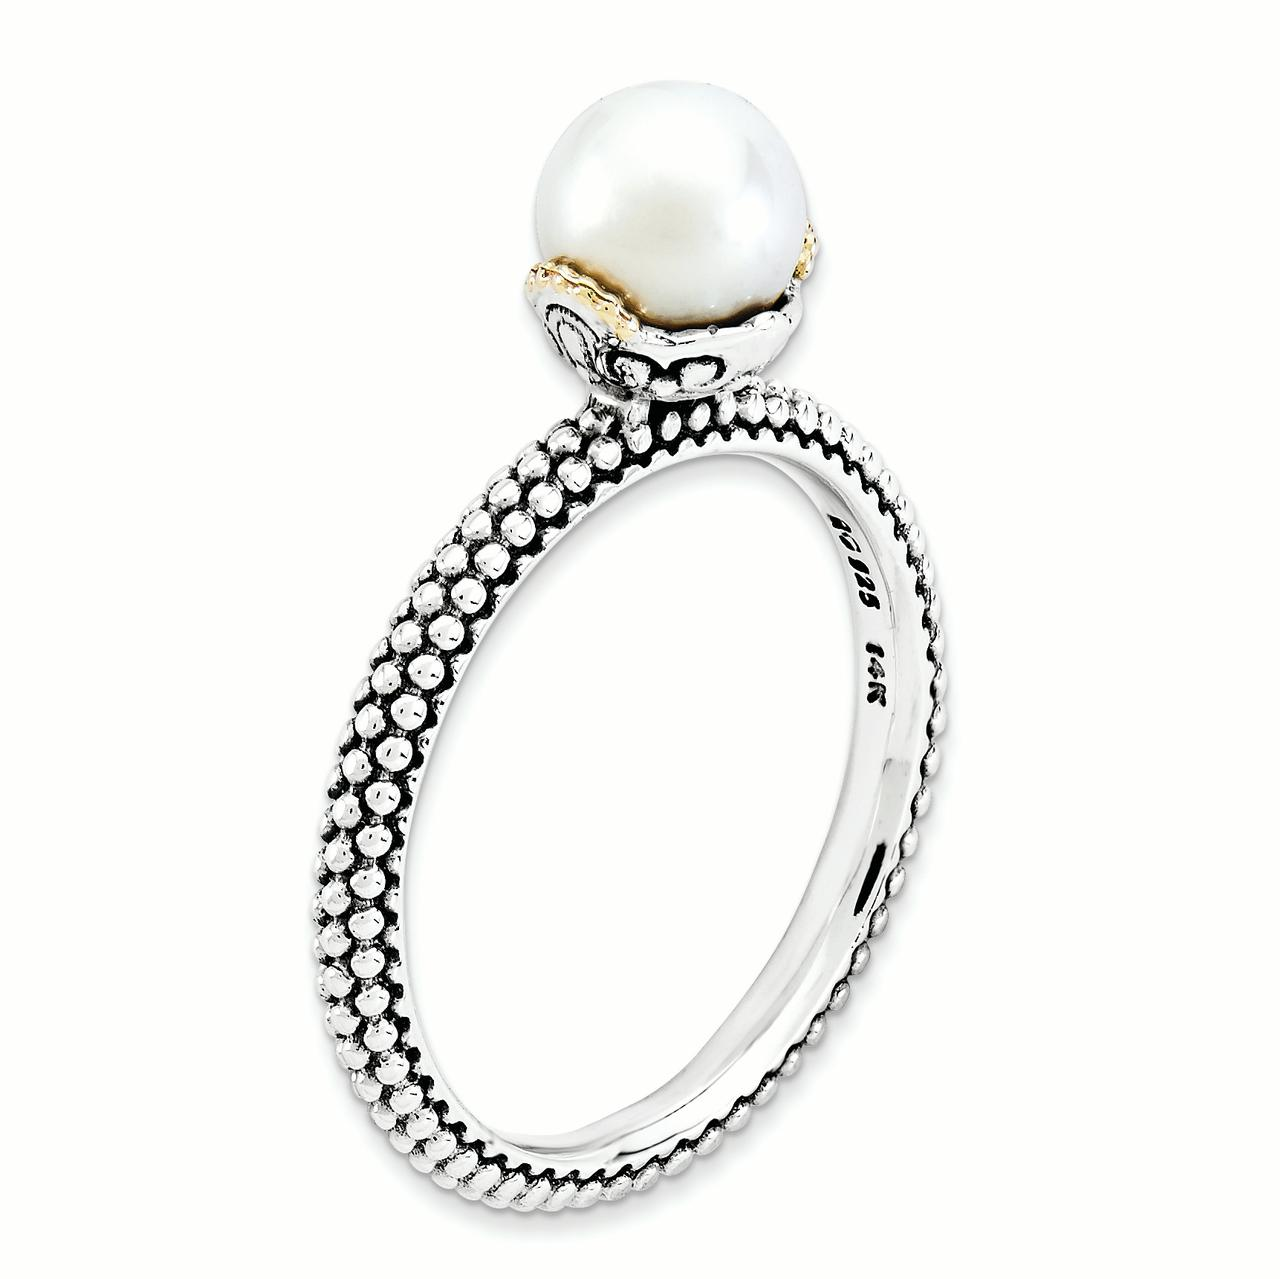 Sterling Silver & 14k Stack Exp. 7.0-7.5mm White FW Cultured Pearl Ring Size 8 - image 3 de 3